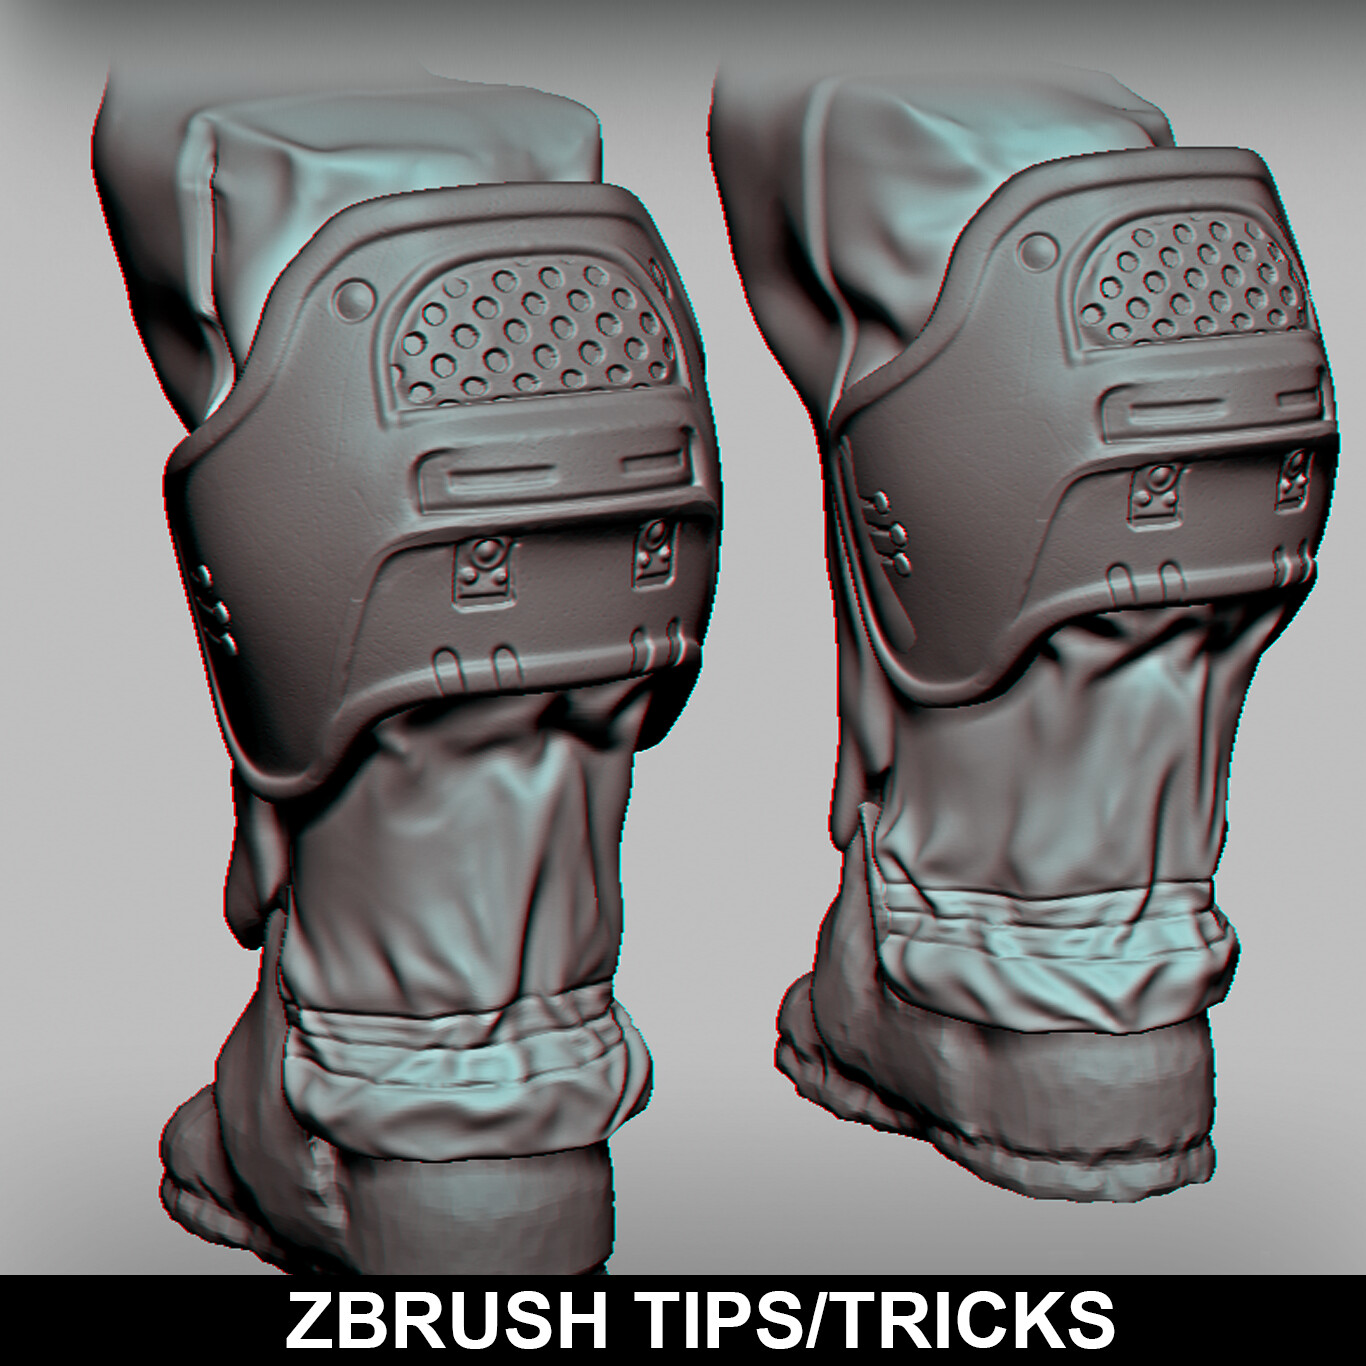 Zbrush 2021.5 Workflow Tips/Tricks